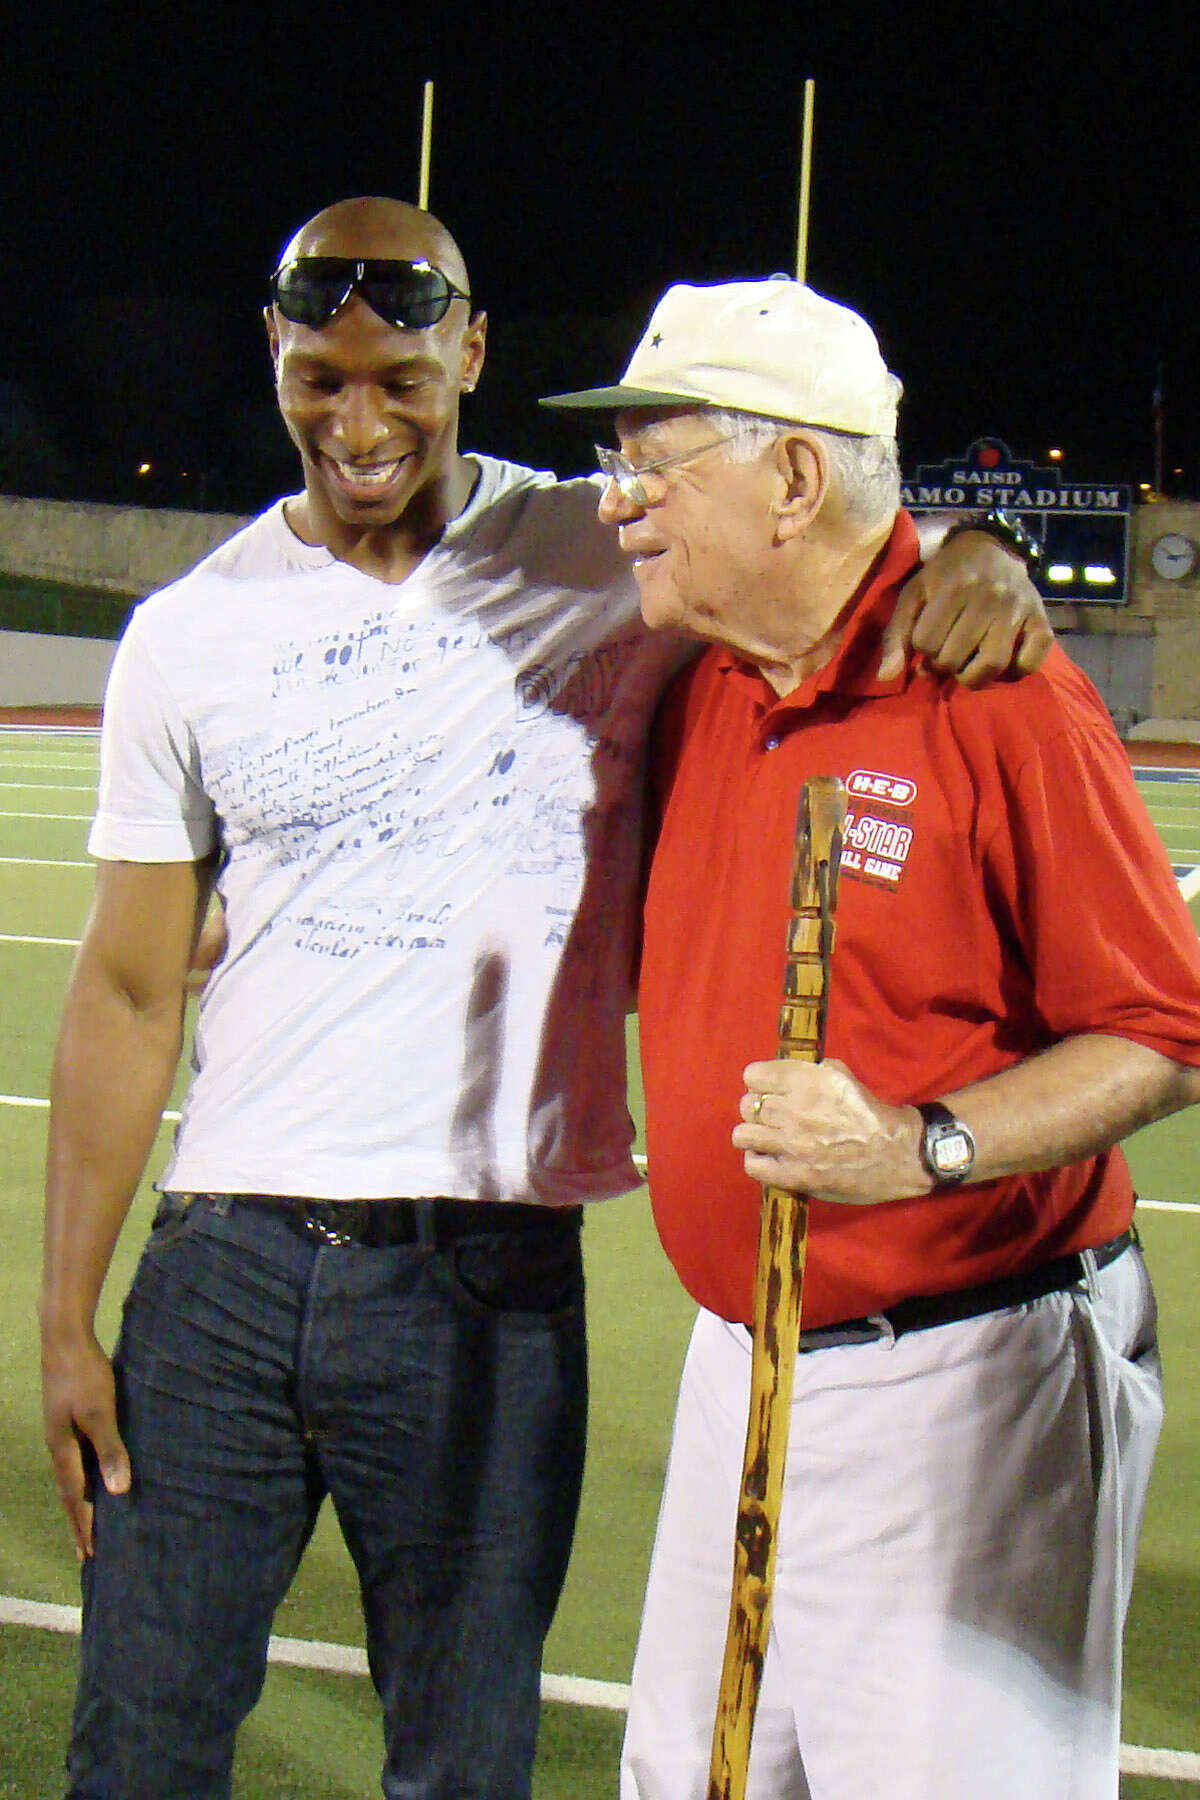 Dallas Cowboys wide receiver Sam Hurd embraces coach George Pasterchick at 2010 H-E-B San Antonio High School All-Star Football Game on May 17, 2010. Hurd played for Pasterchick in this game in 2002.